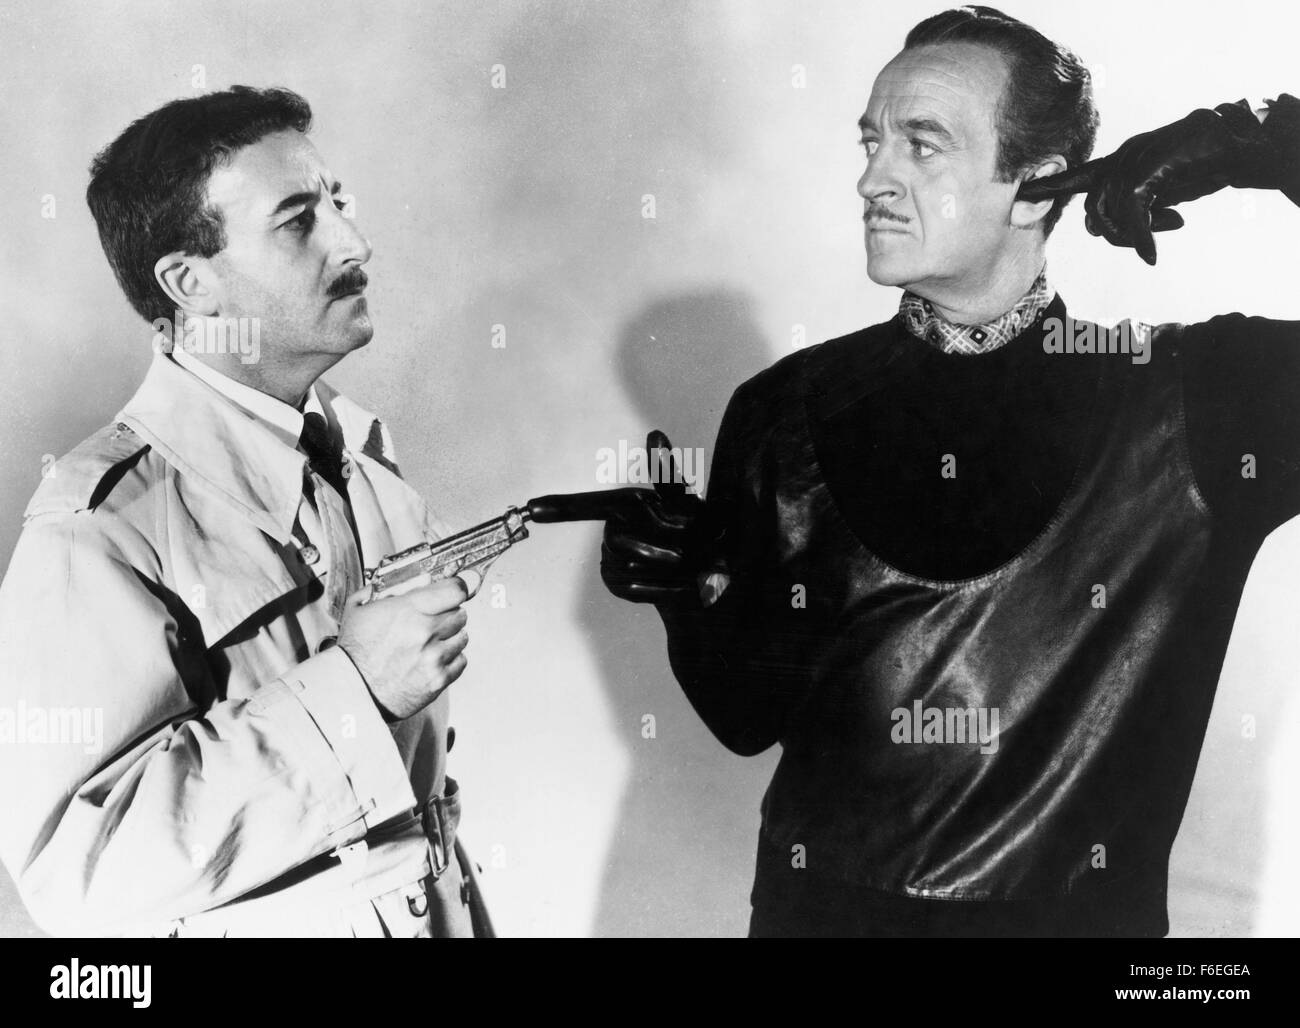 e6f0c56e5f74 Feb 20, 1964; Hollywood, CA, USA; Image from director Blake Edwards' crime  comedy 'The Pink Panther' starring DAVID NIVEN as Sir Charles Lytton and  PETER ...